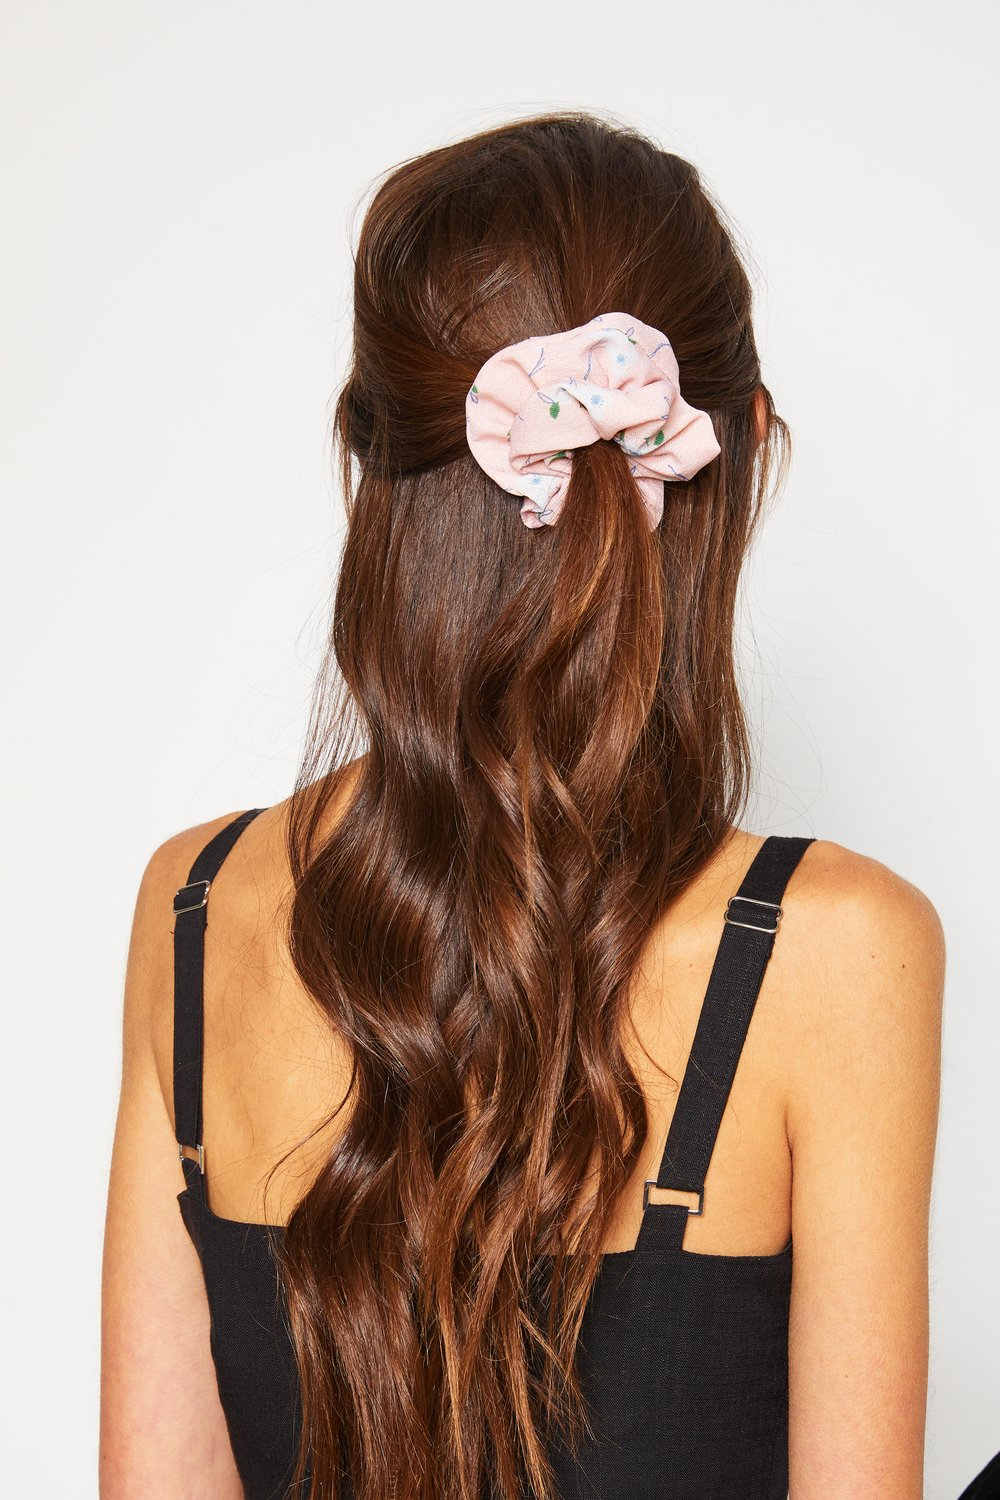 Ane Scrunchie - Pink Floral